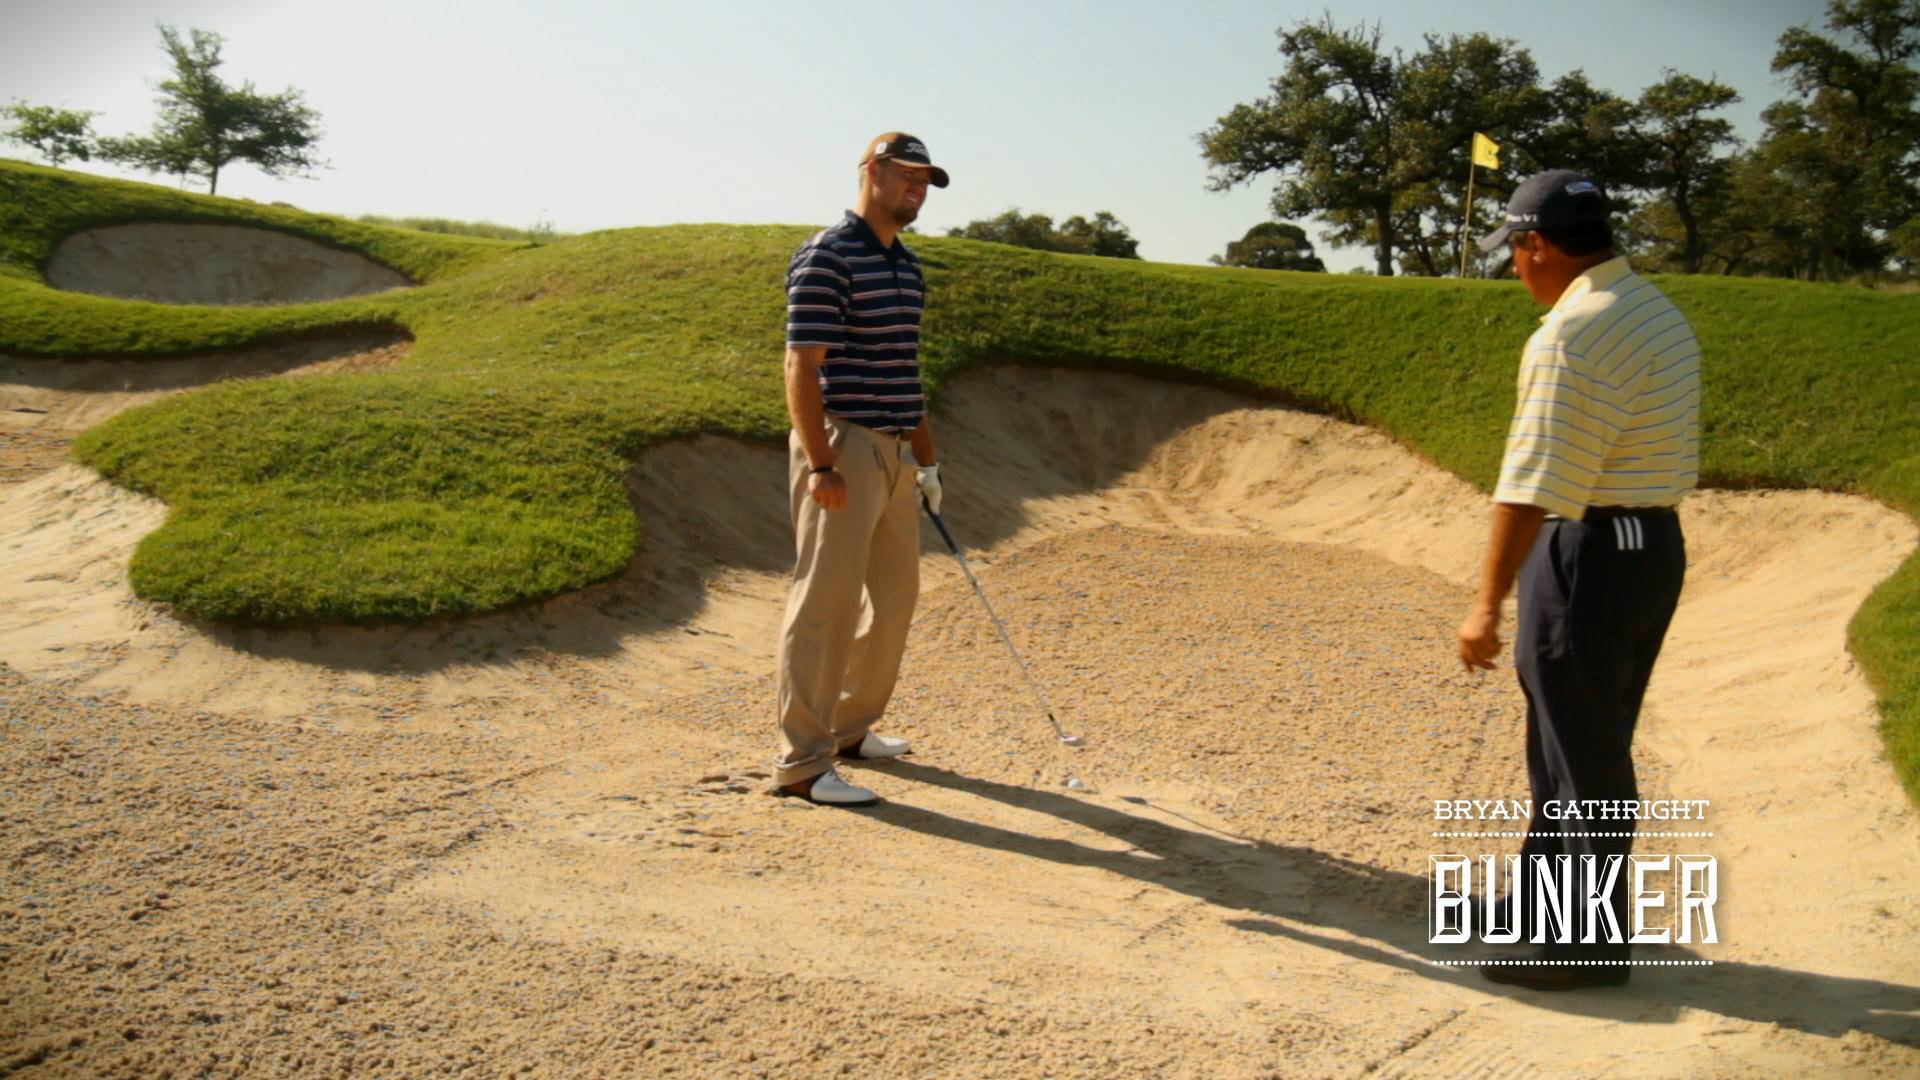 Bunkers: Buried Lie in Bunker